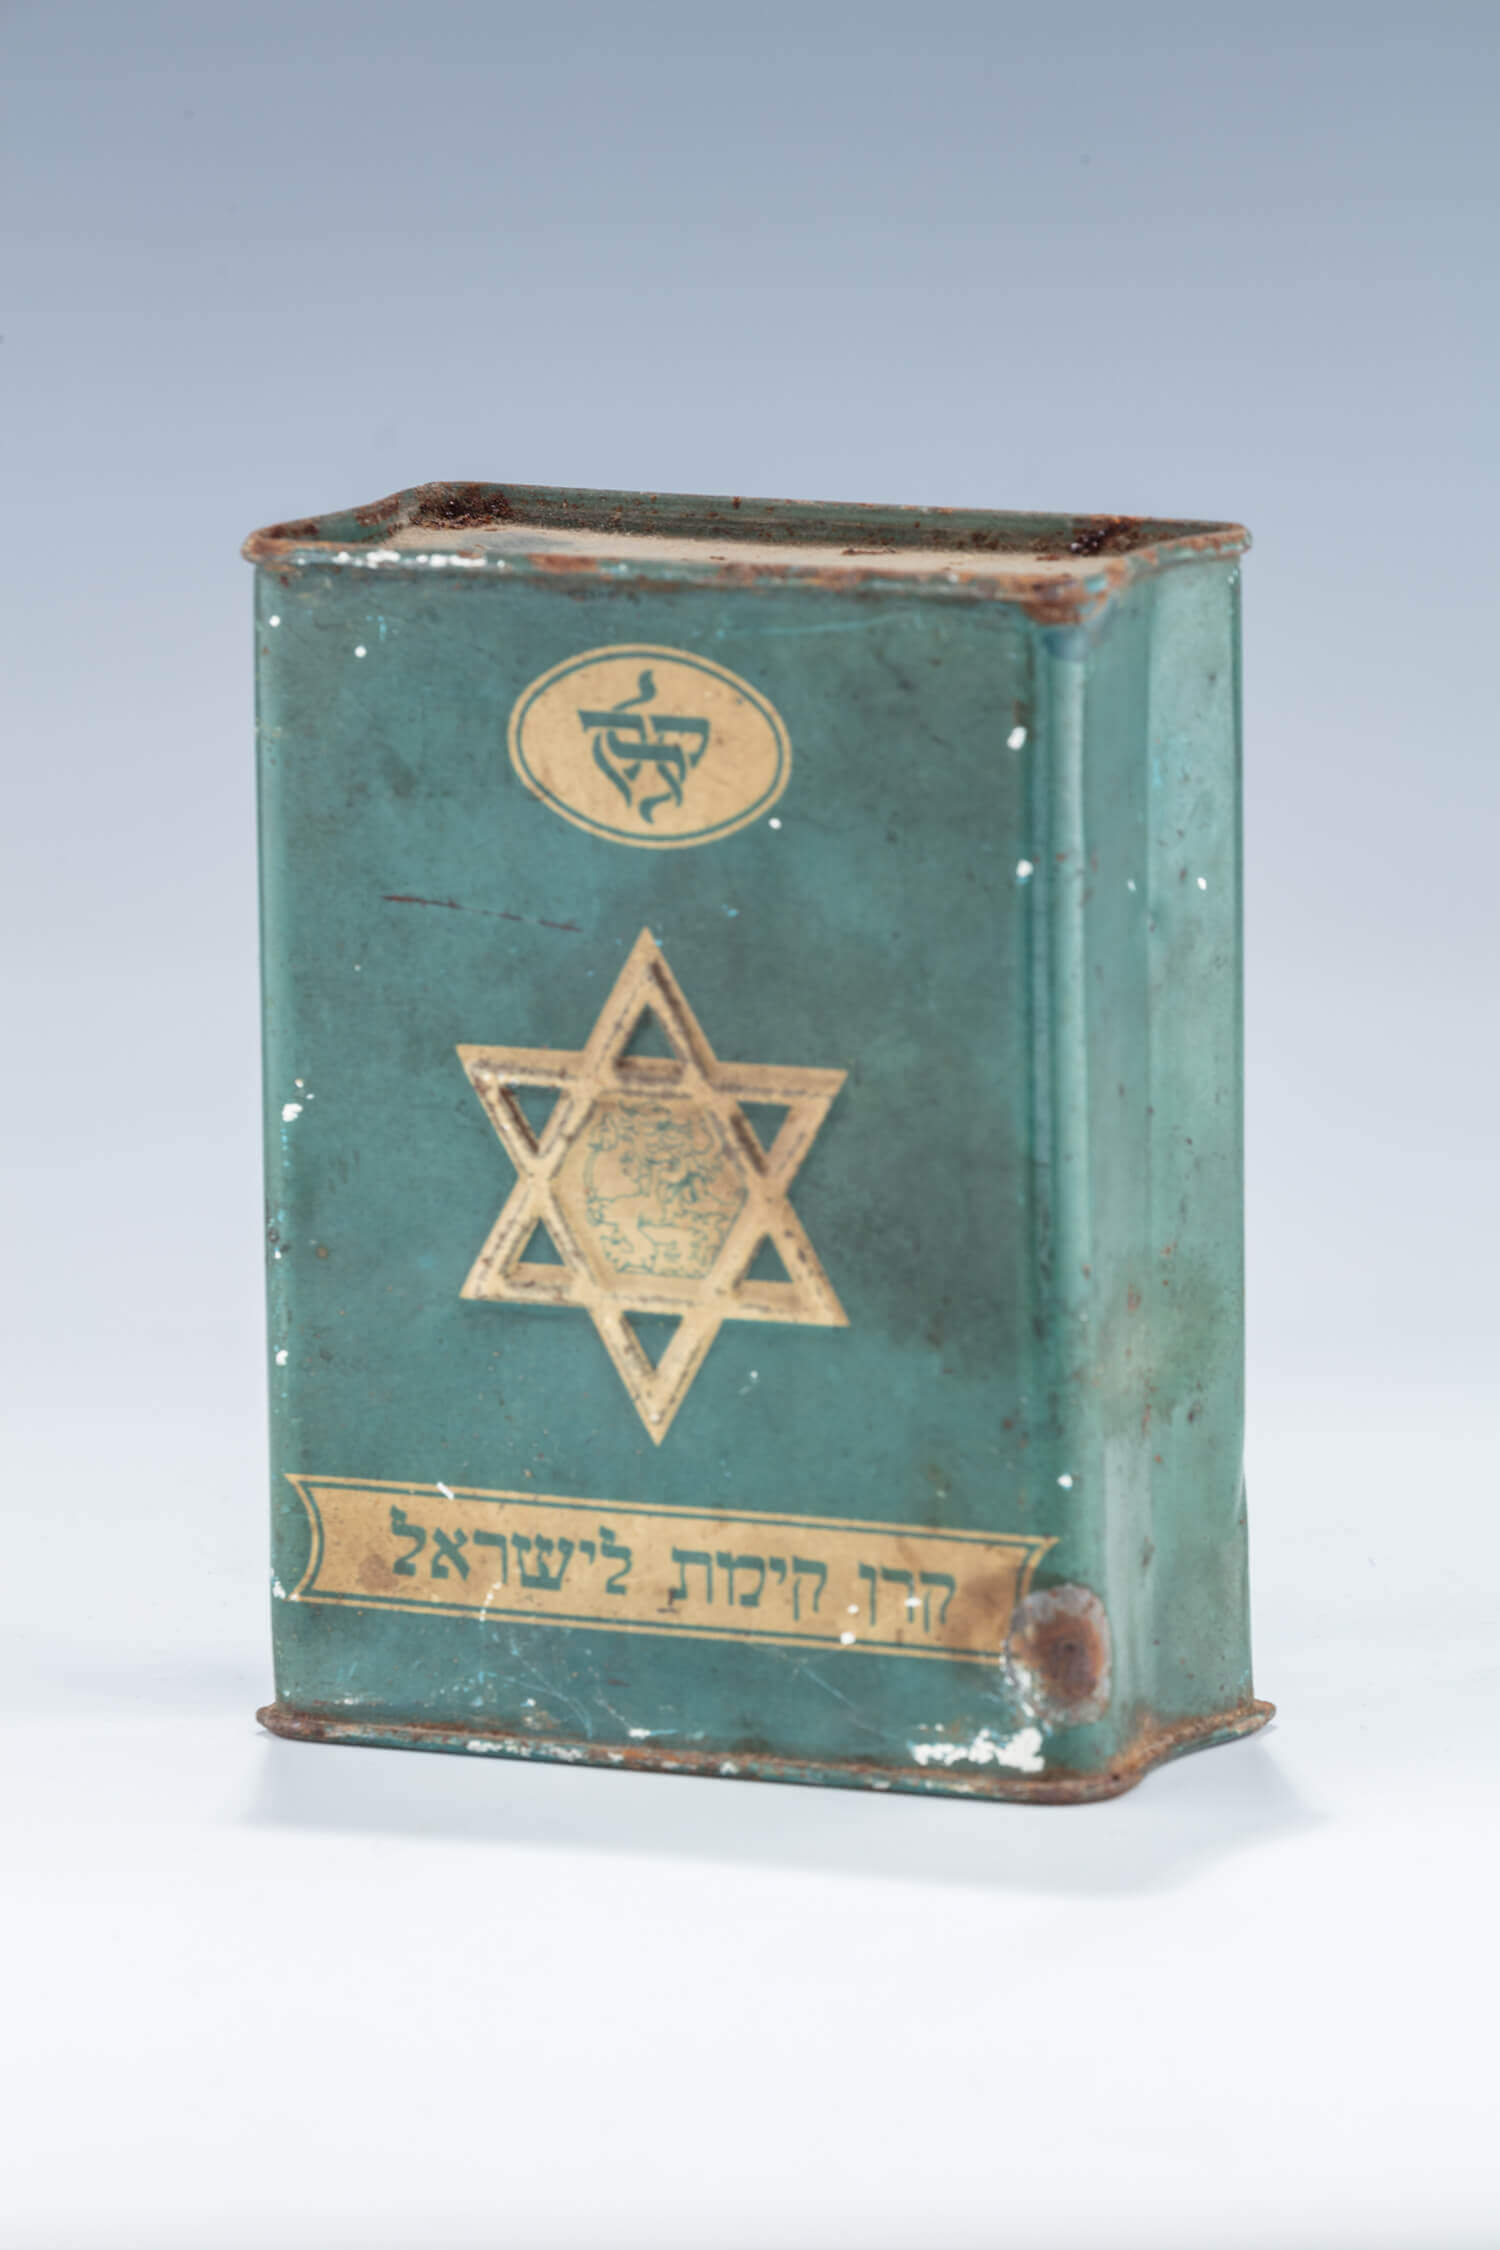 003. A RARE AND IMPORTANT JNF COLLECTION BOX